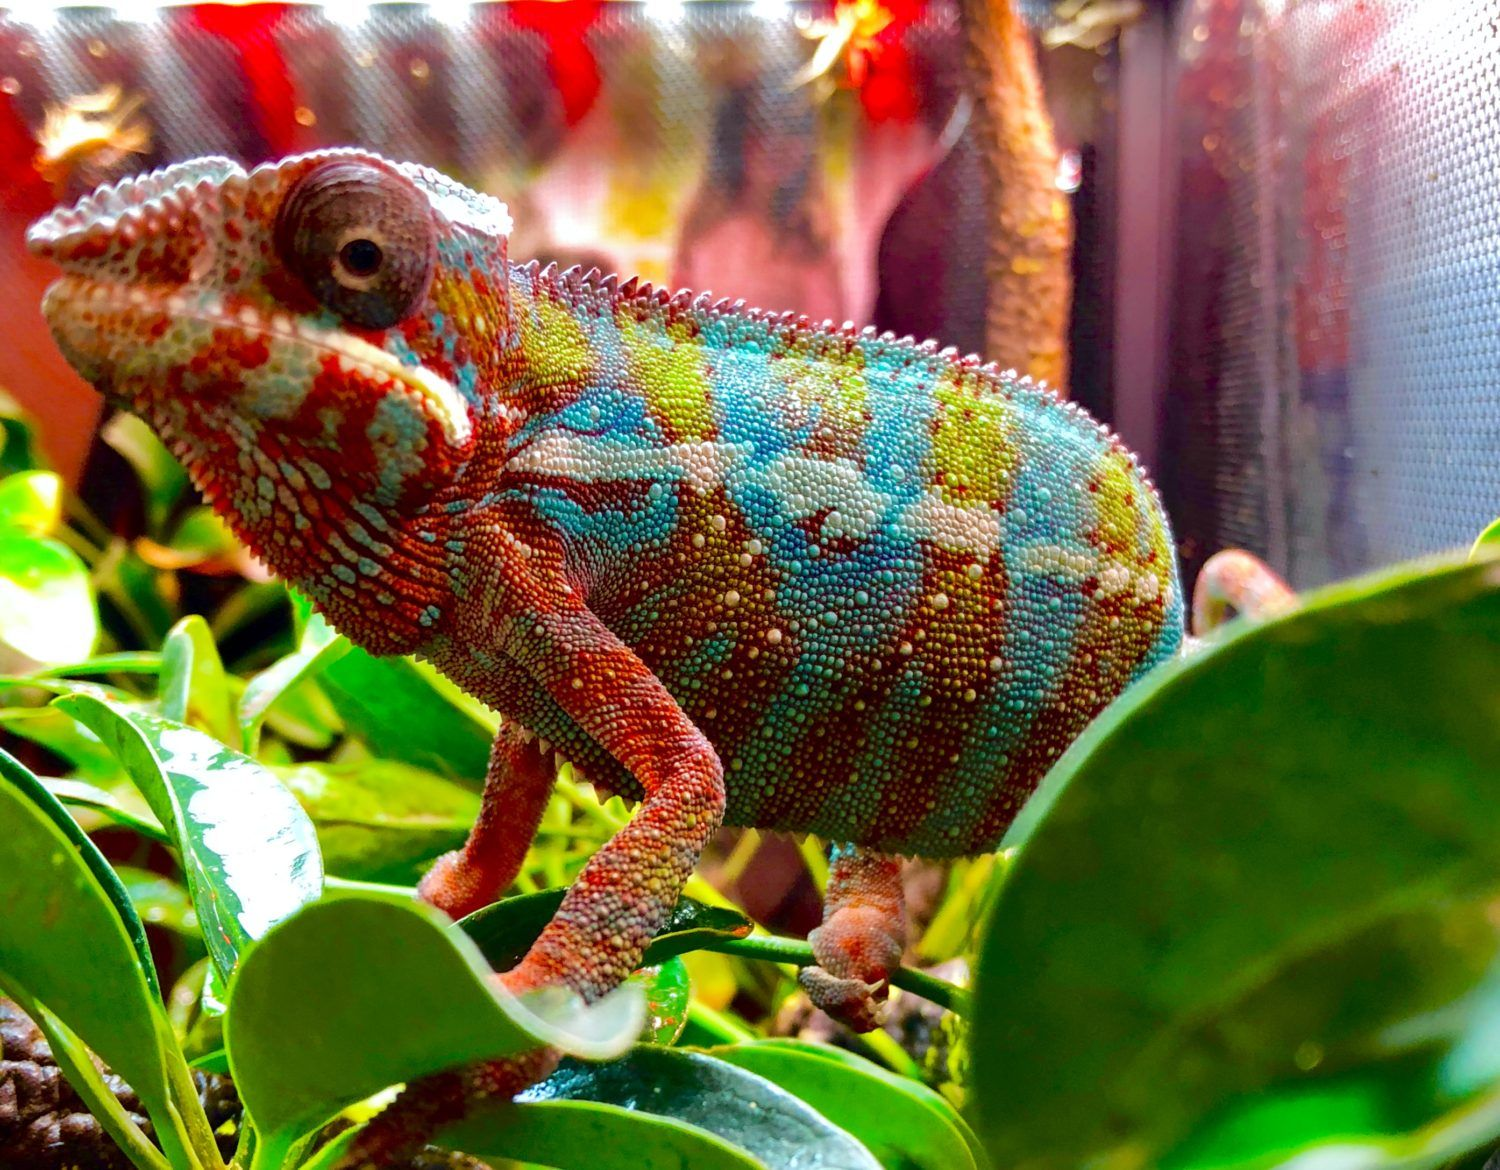 Unmistakable and unique, chameleons are perhaps the most beautiful lizards in the world. We stock a wide variety of chameleon species, with something for nearly every level of reptile-keeping experience.